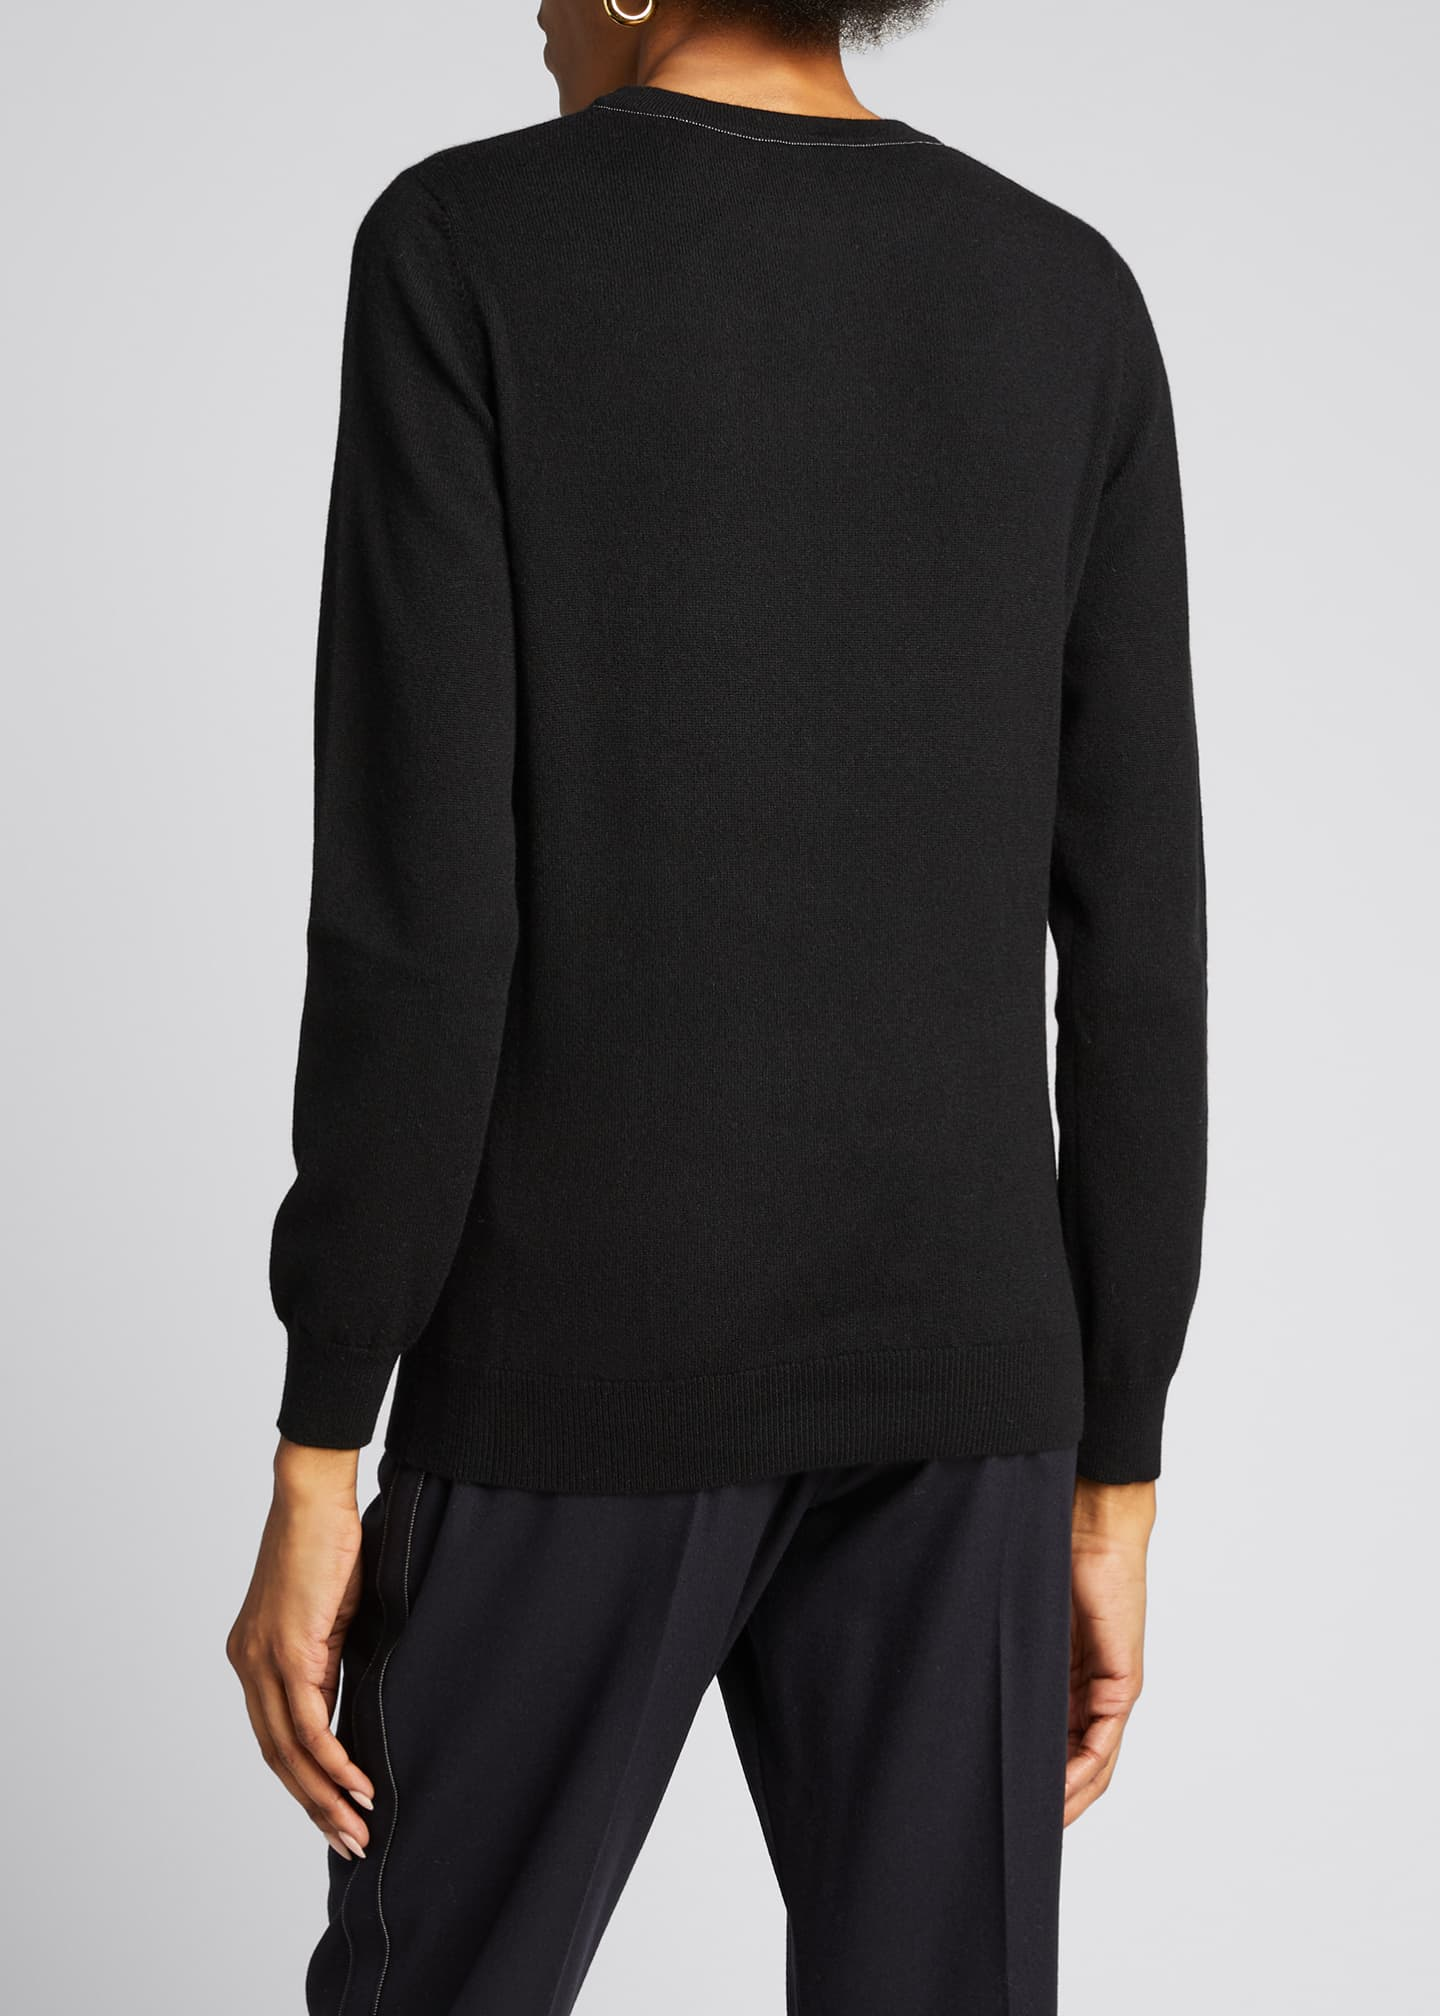 Image 2 of 5: Cashmere Basic Crewneck Sweater